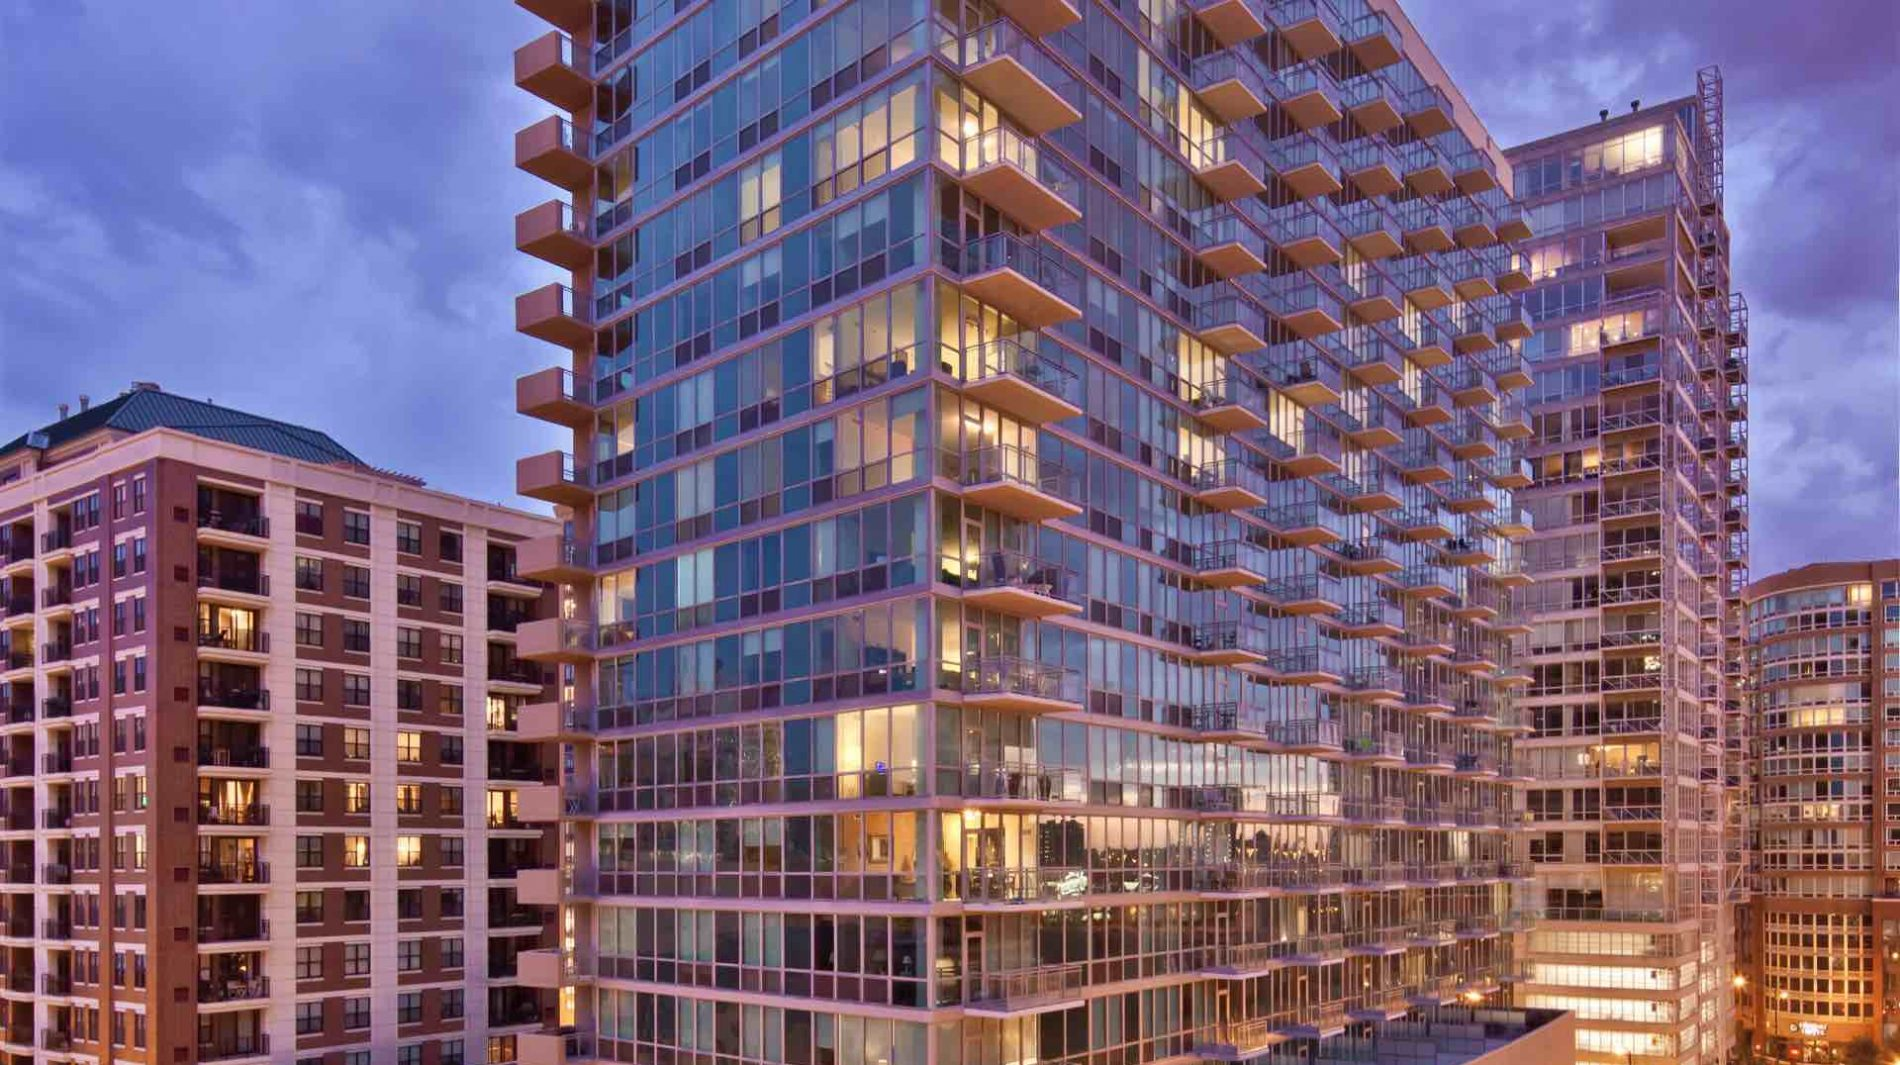 The first LEED Gold Certified residence in downtown Chicago, Parc Huron offers a breath of fresh air from the everyday in more ways than one.